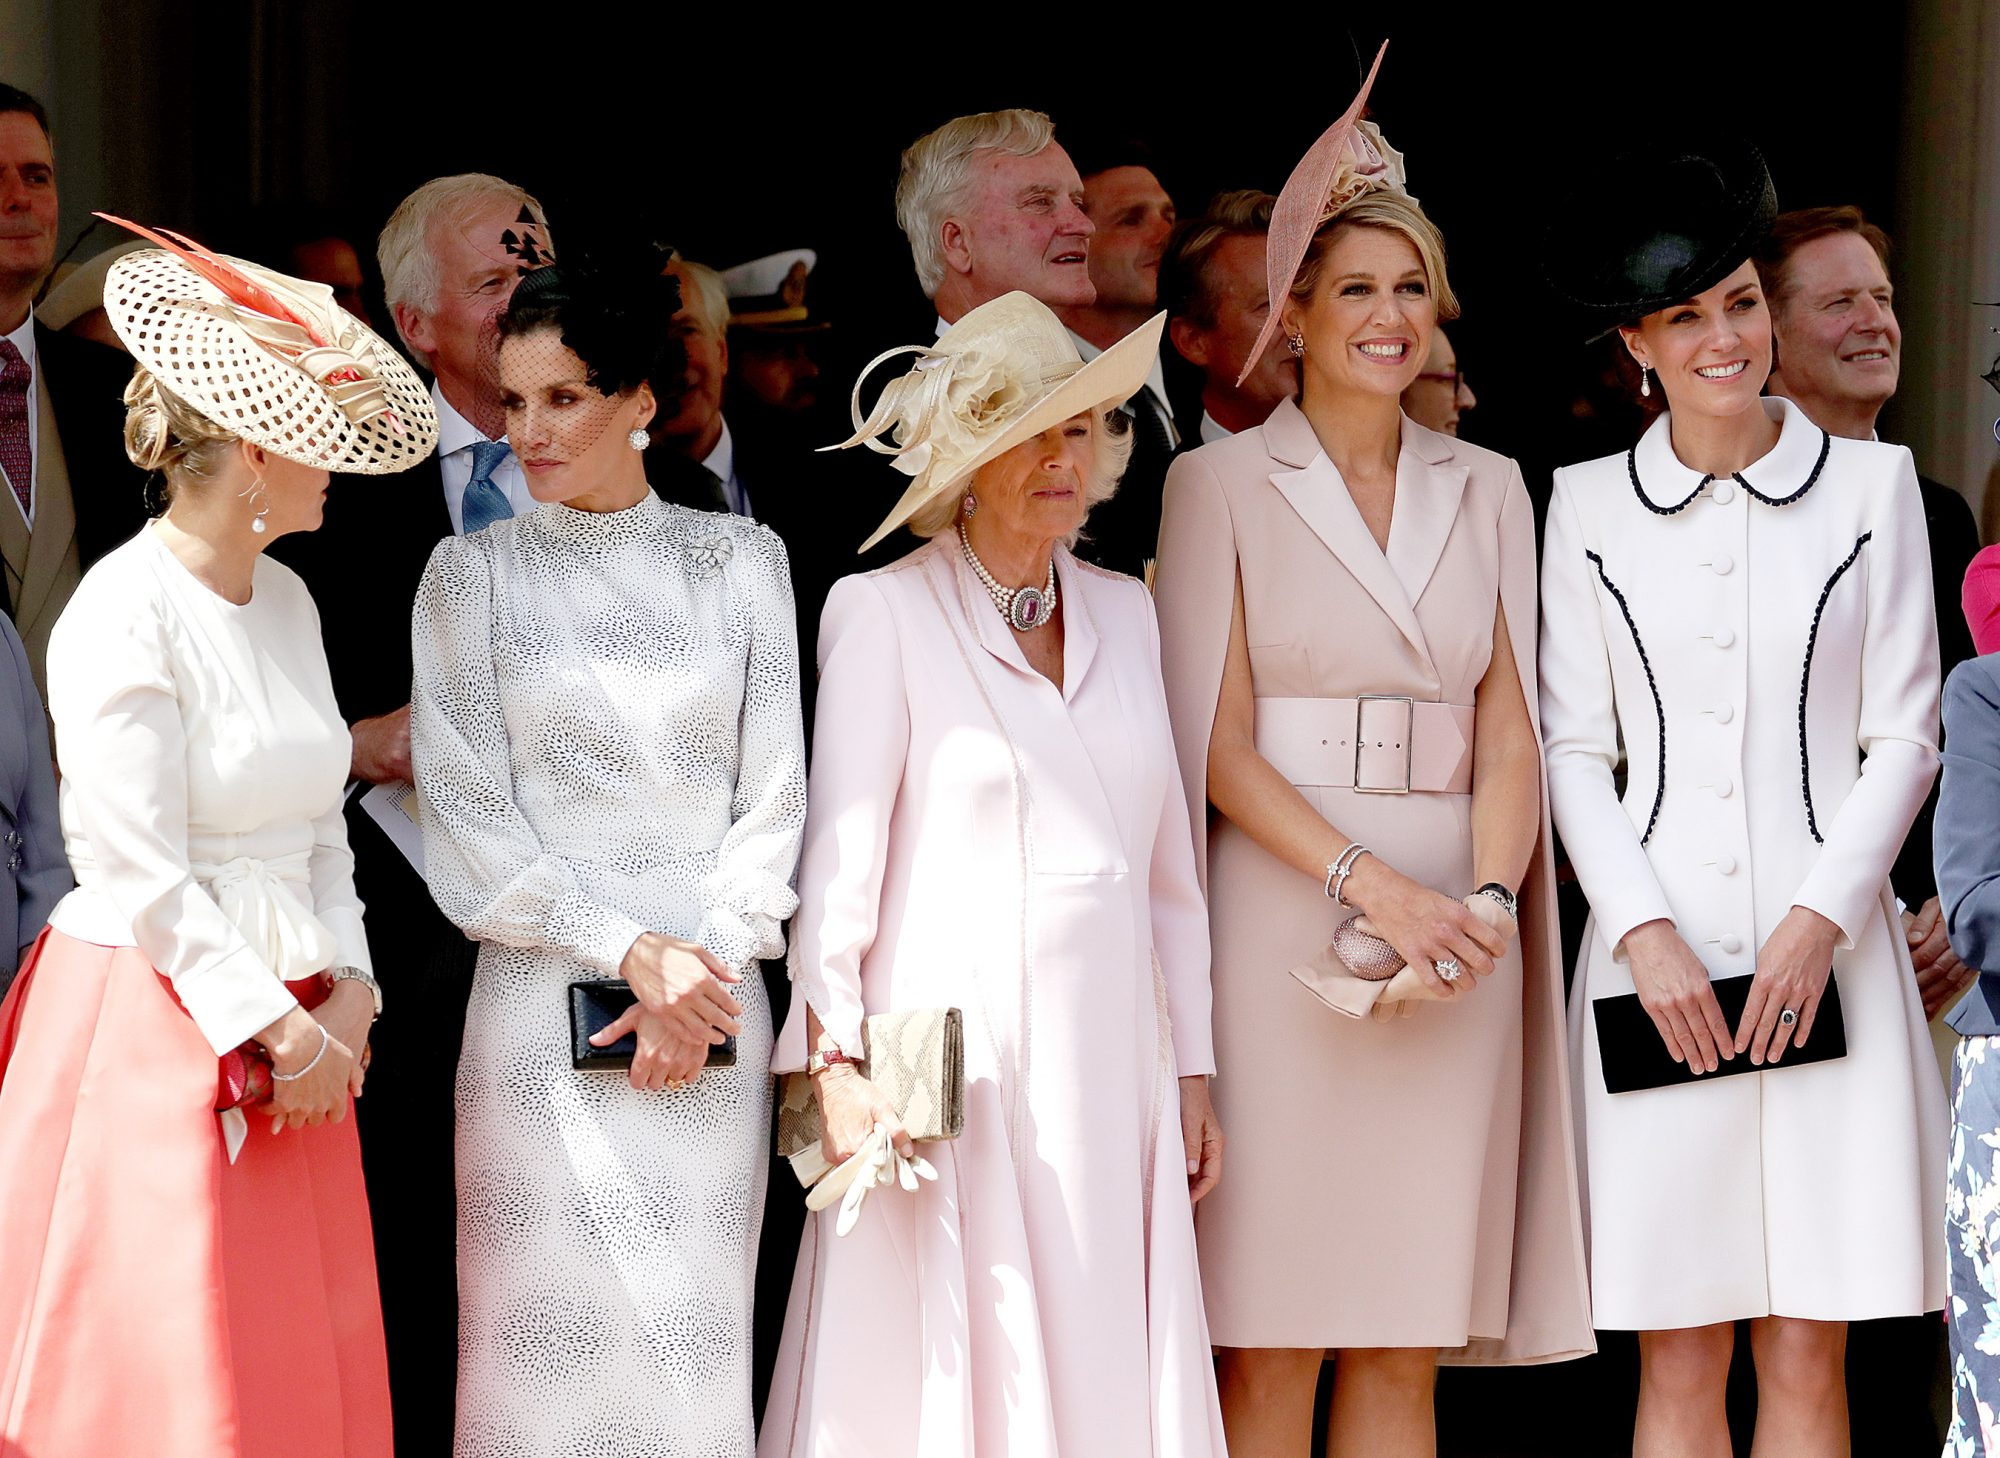 Order of the Garter Service 2019. (left to right) Sophie Countess of Wessex, Queen Letizia of Spain, the Duchess of Cornwall, Queen Maxima of the Netherlands and the Duchess of Cambridge